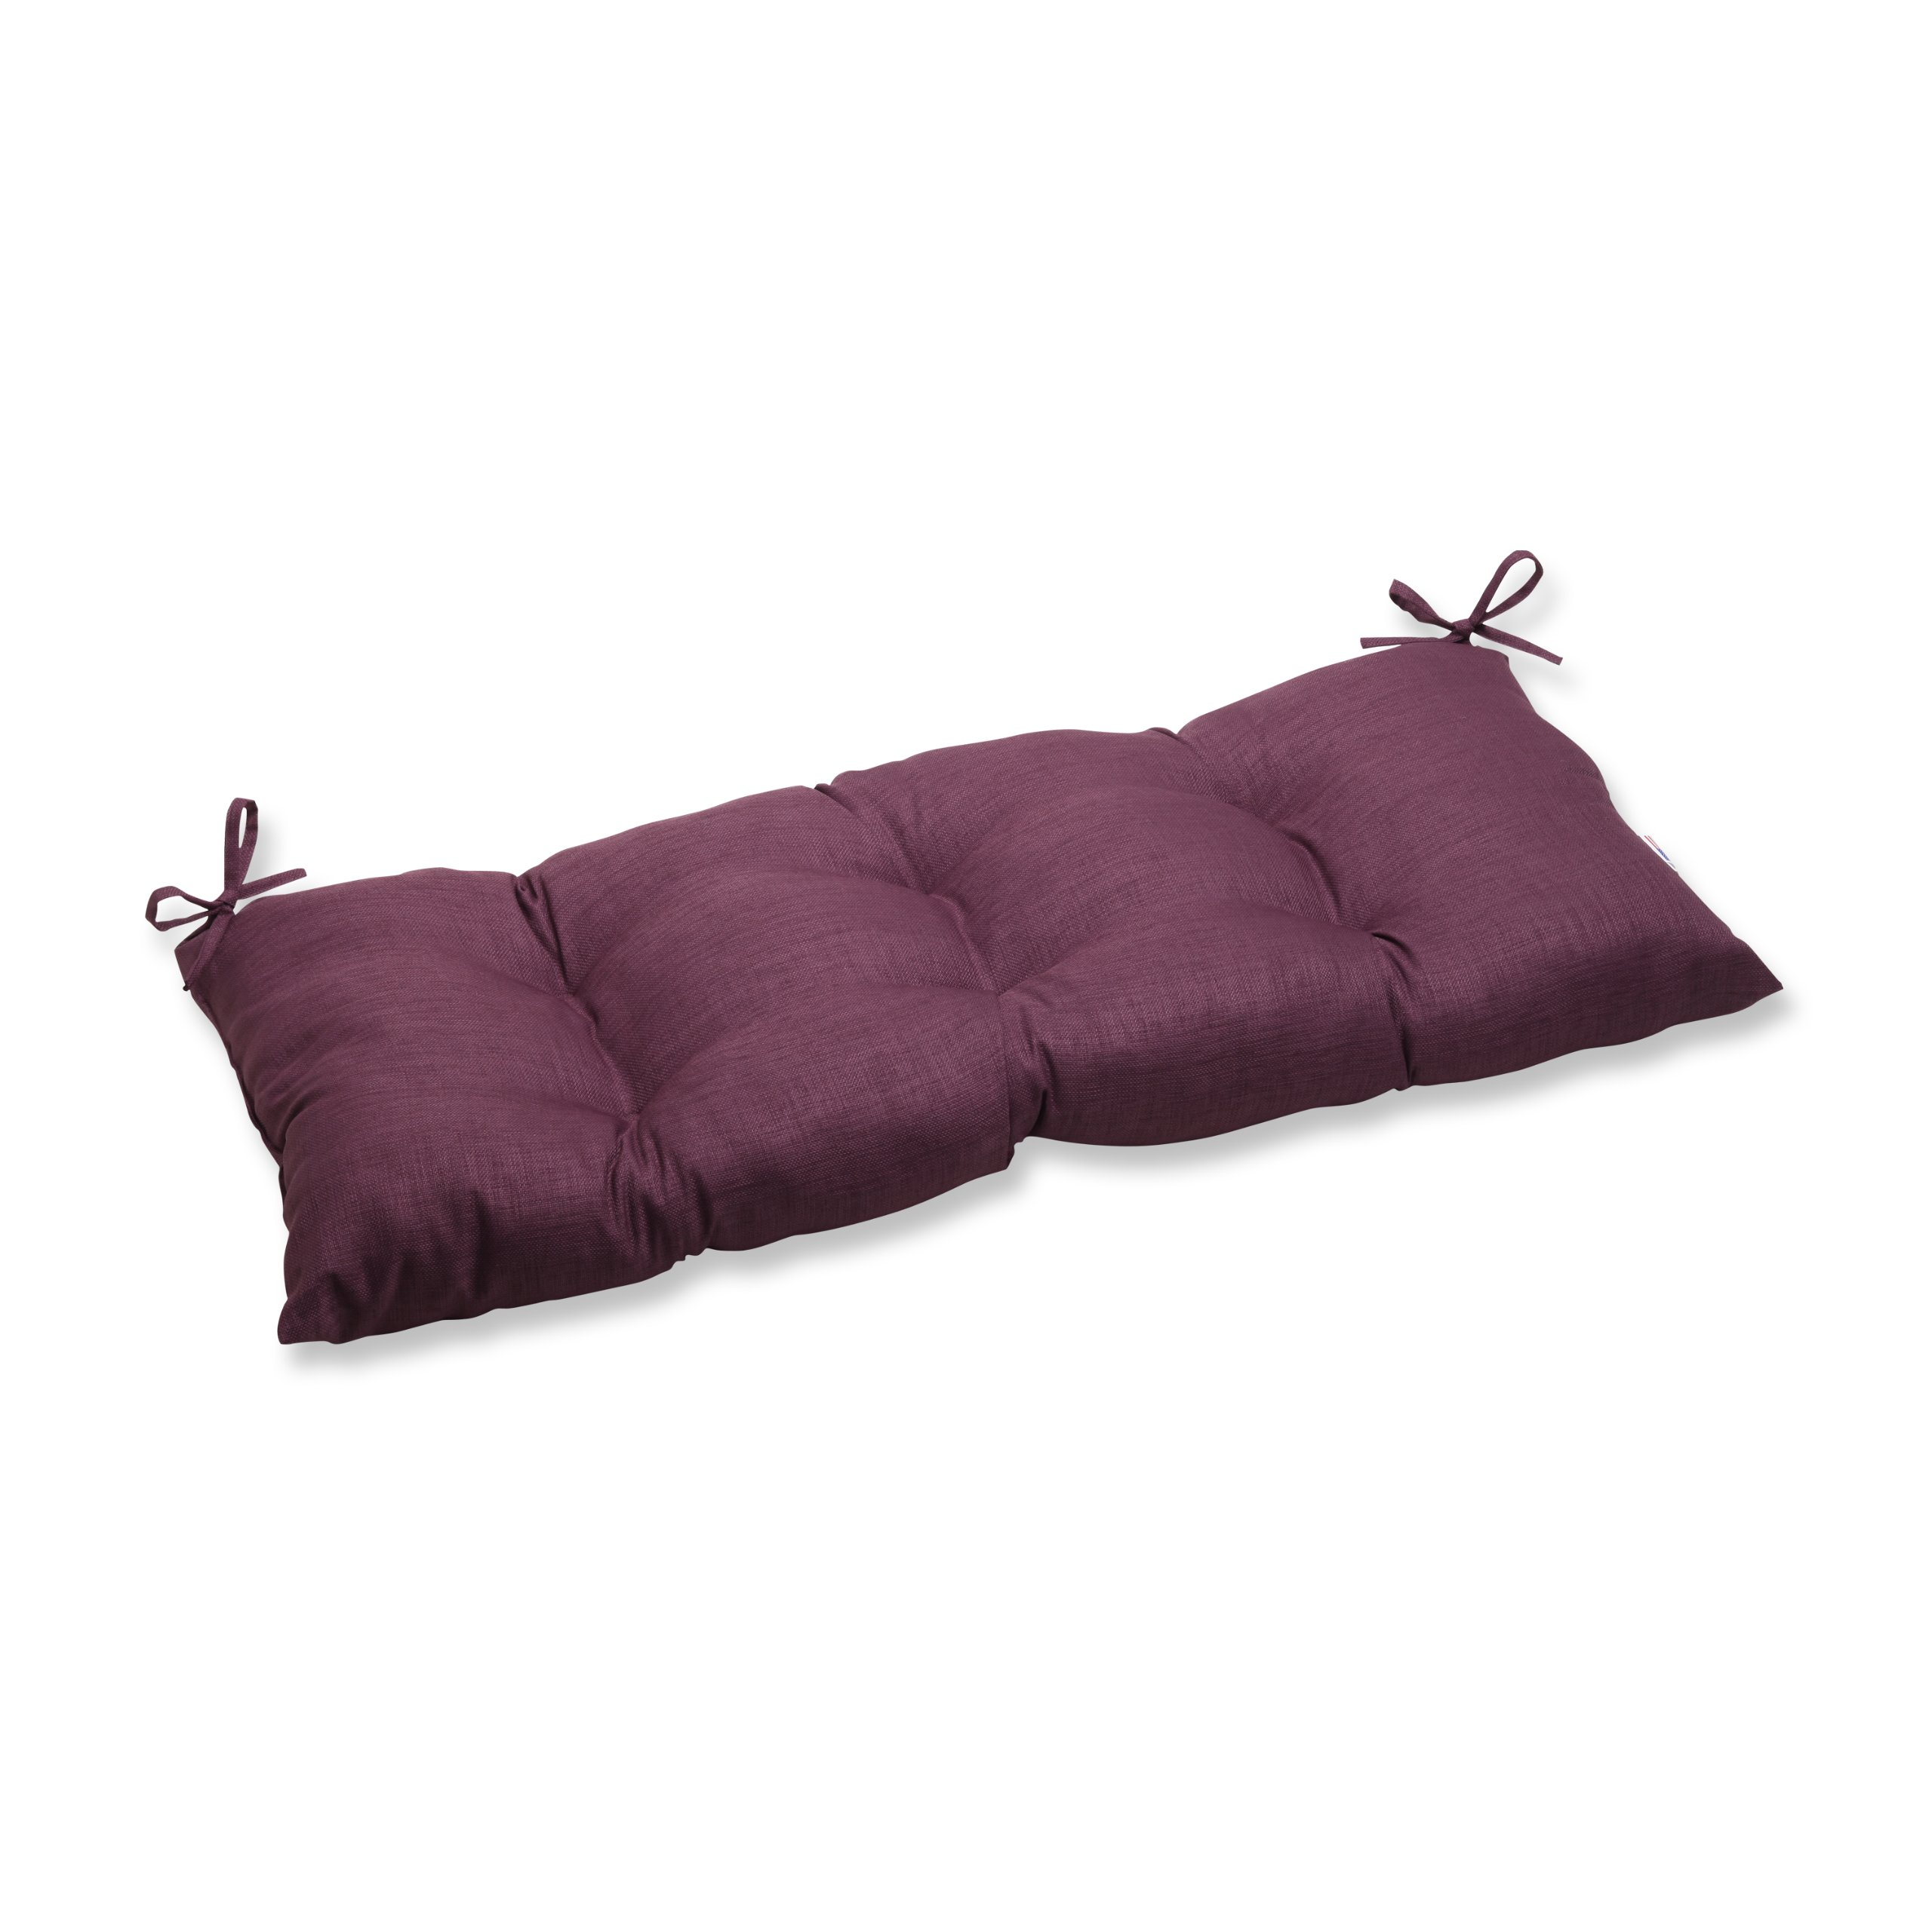 Pillow Perfect Indoor/Outdoor Rave Vineyard Swing/Bench Cushion